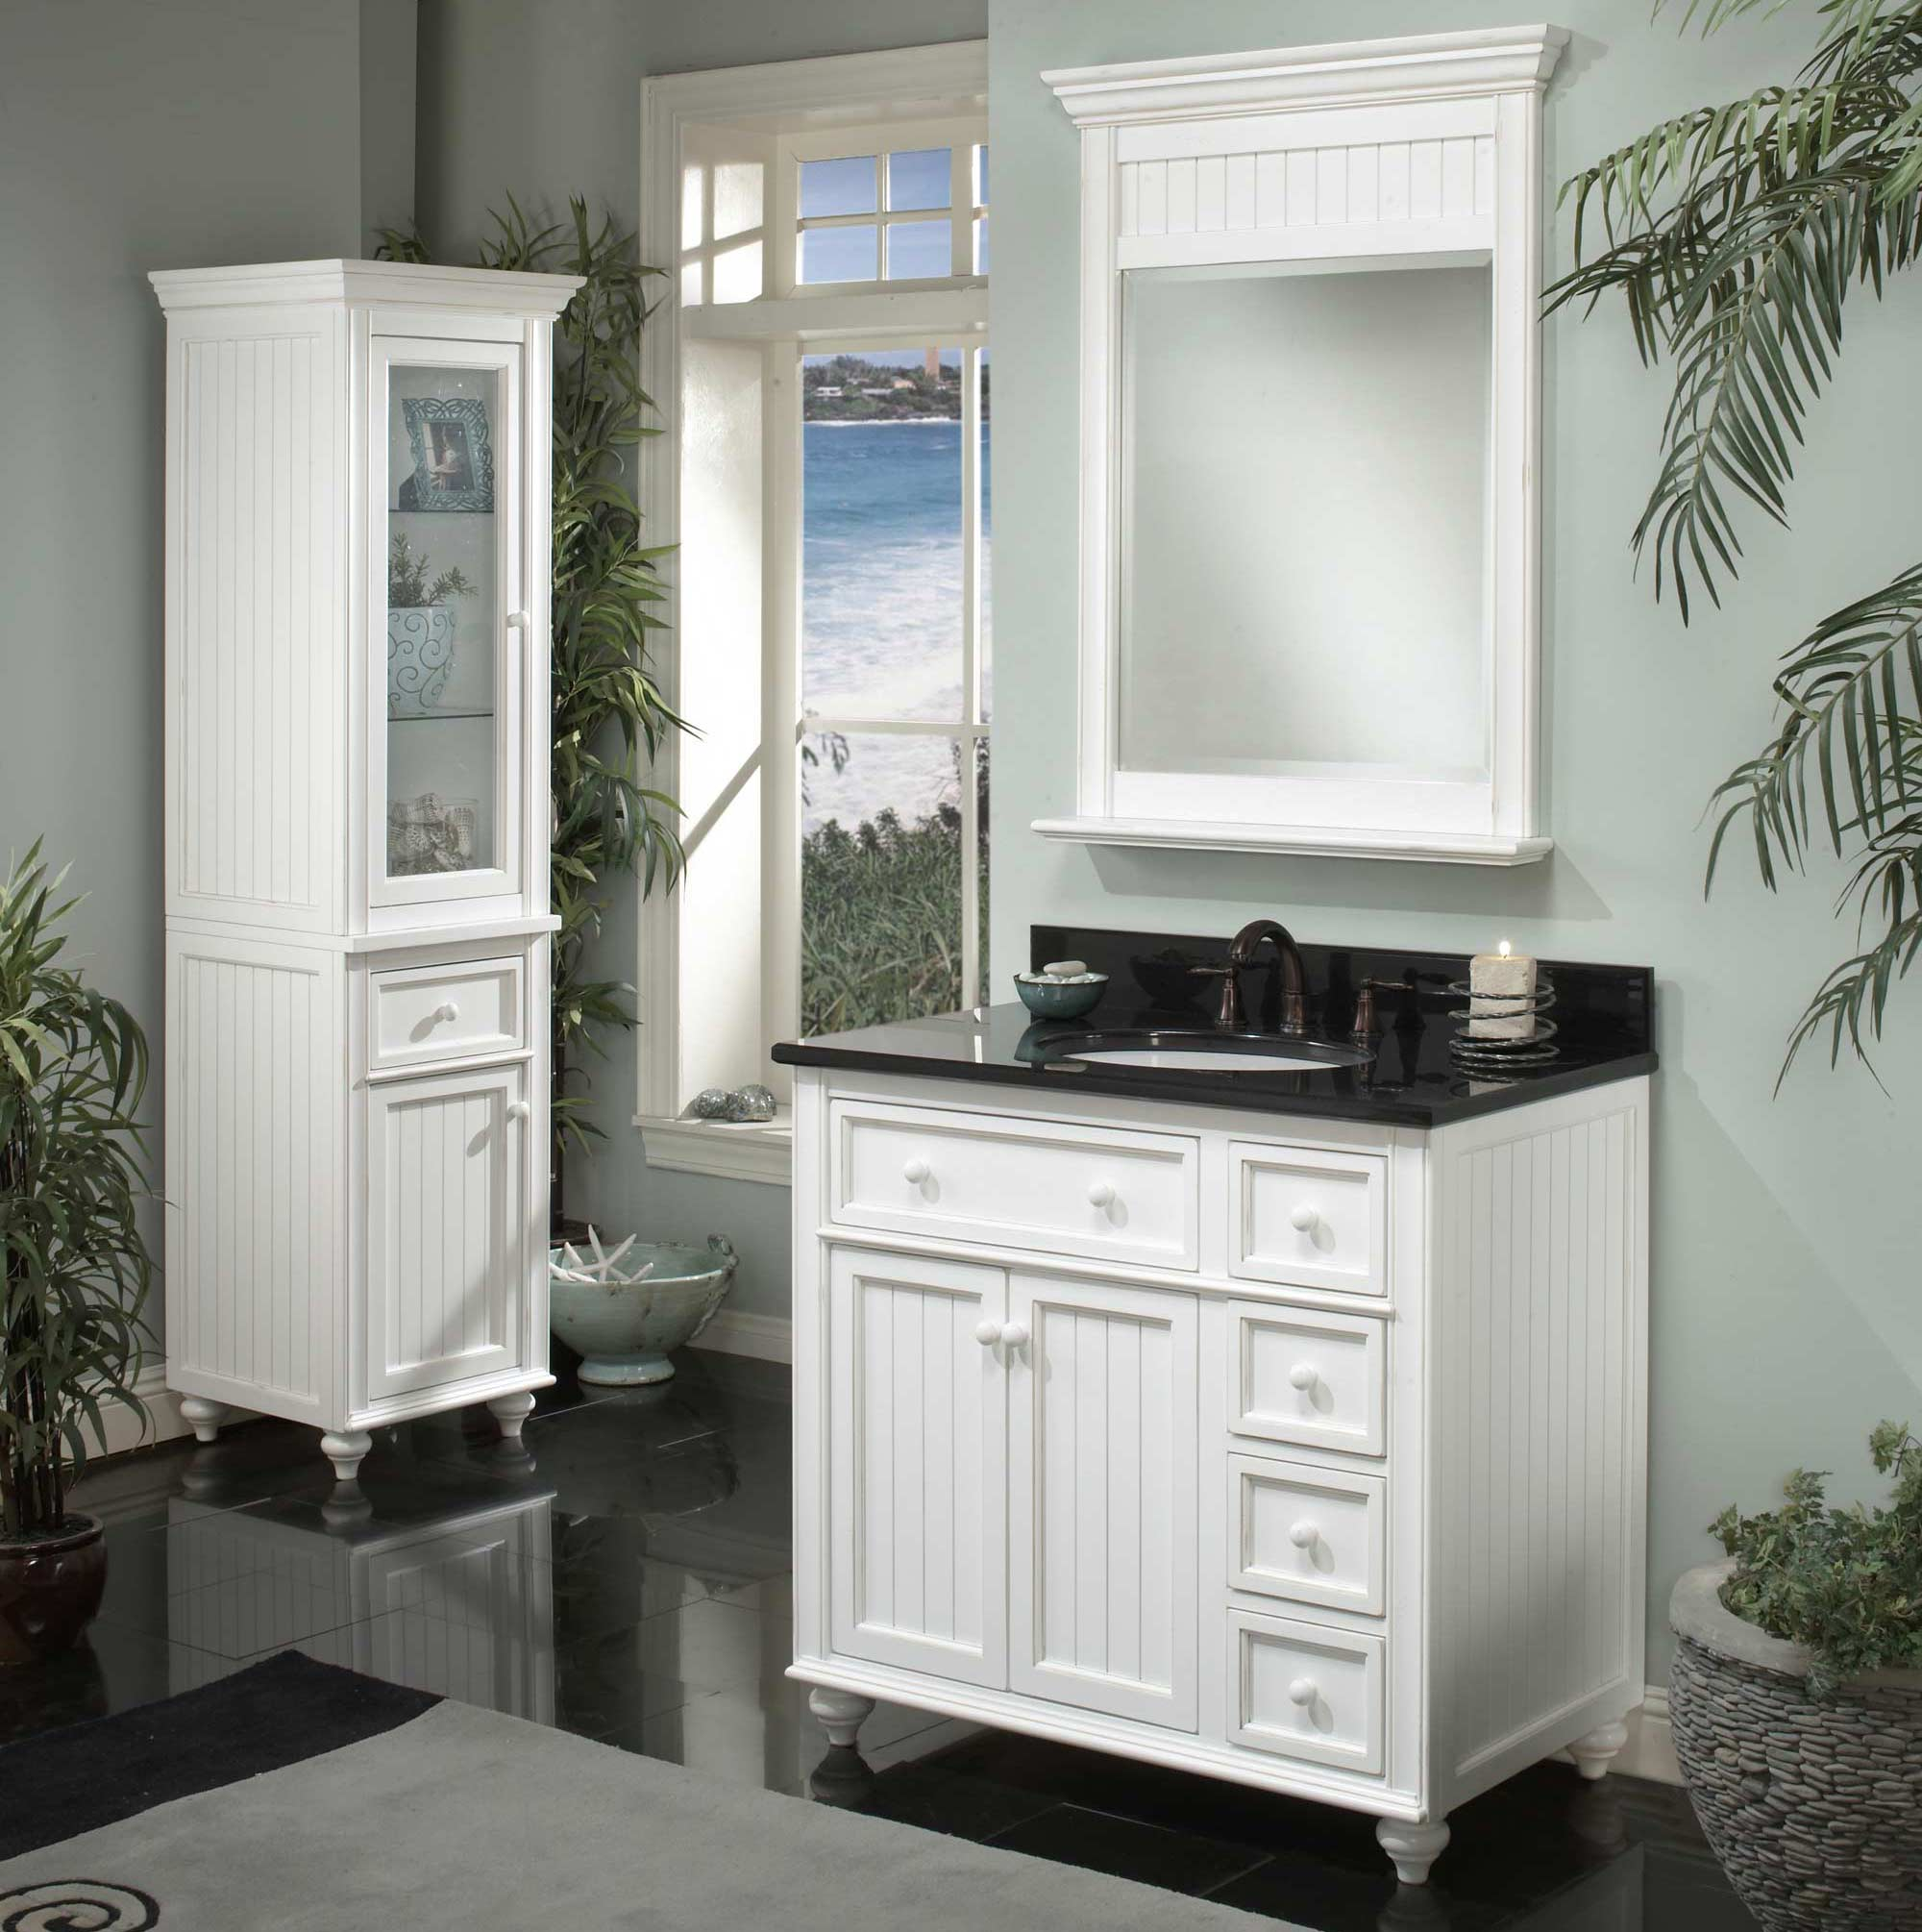 Remarkable White Bathroom Vanities 2000 x 2010 · 261 kB · jpeg